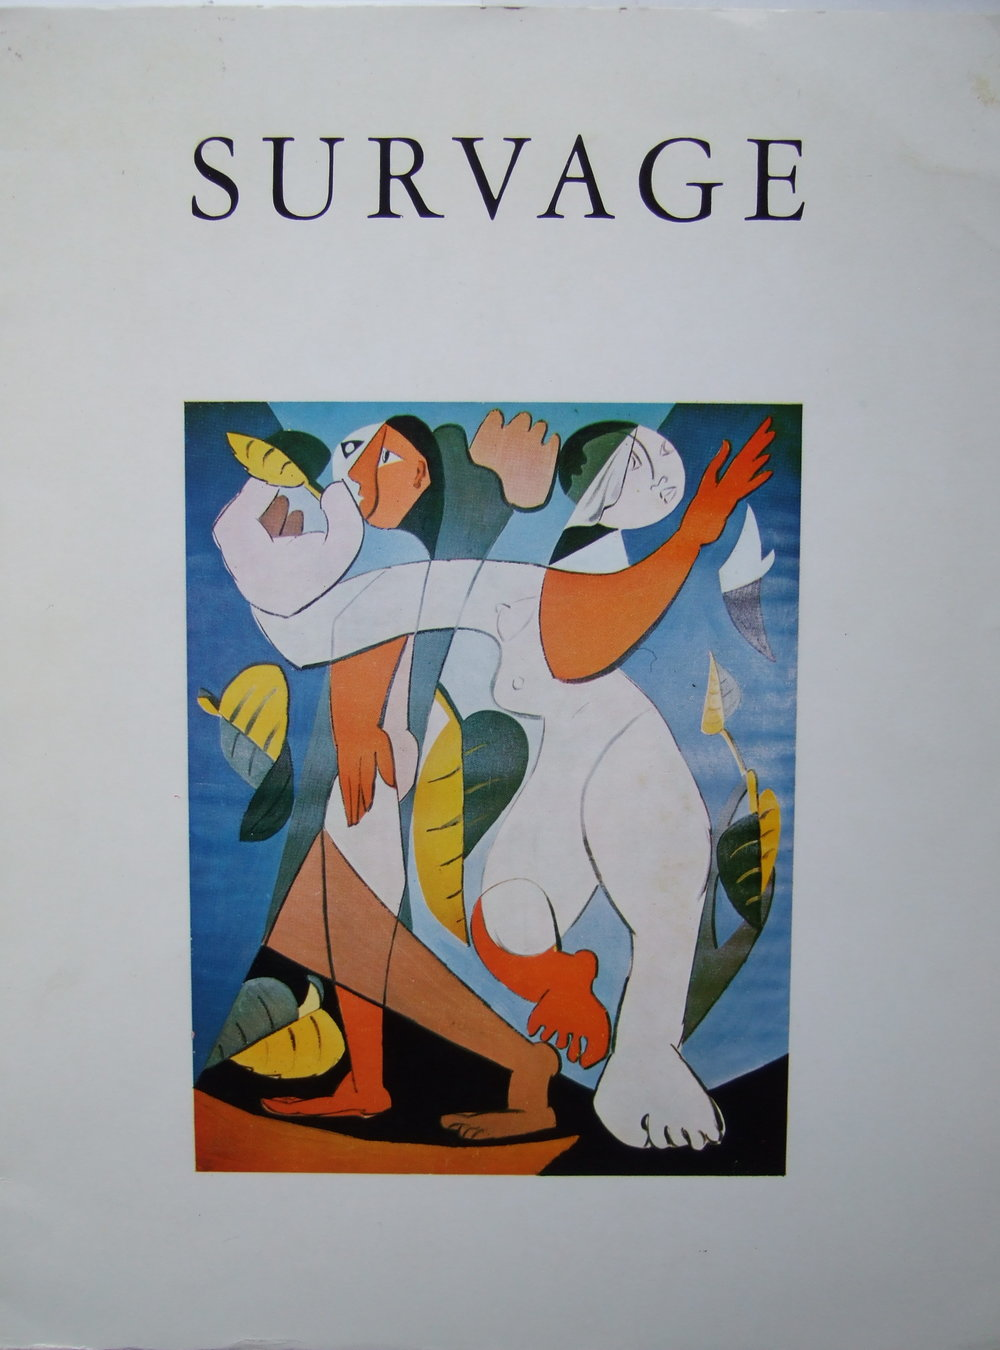 Survage. Catalogue of exhibition in Lyon, 1968.